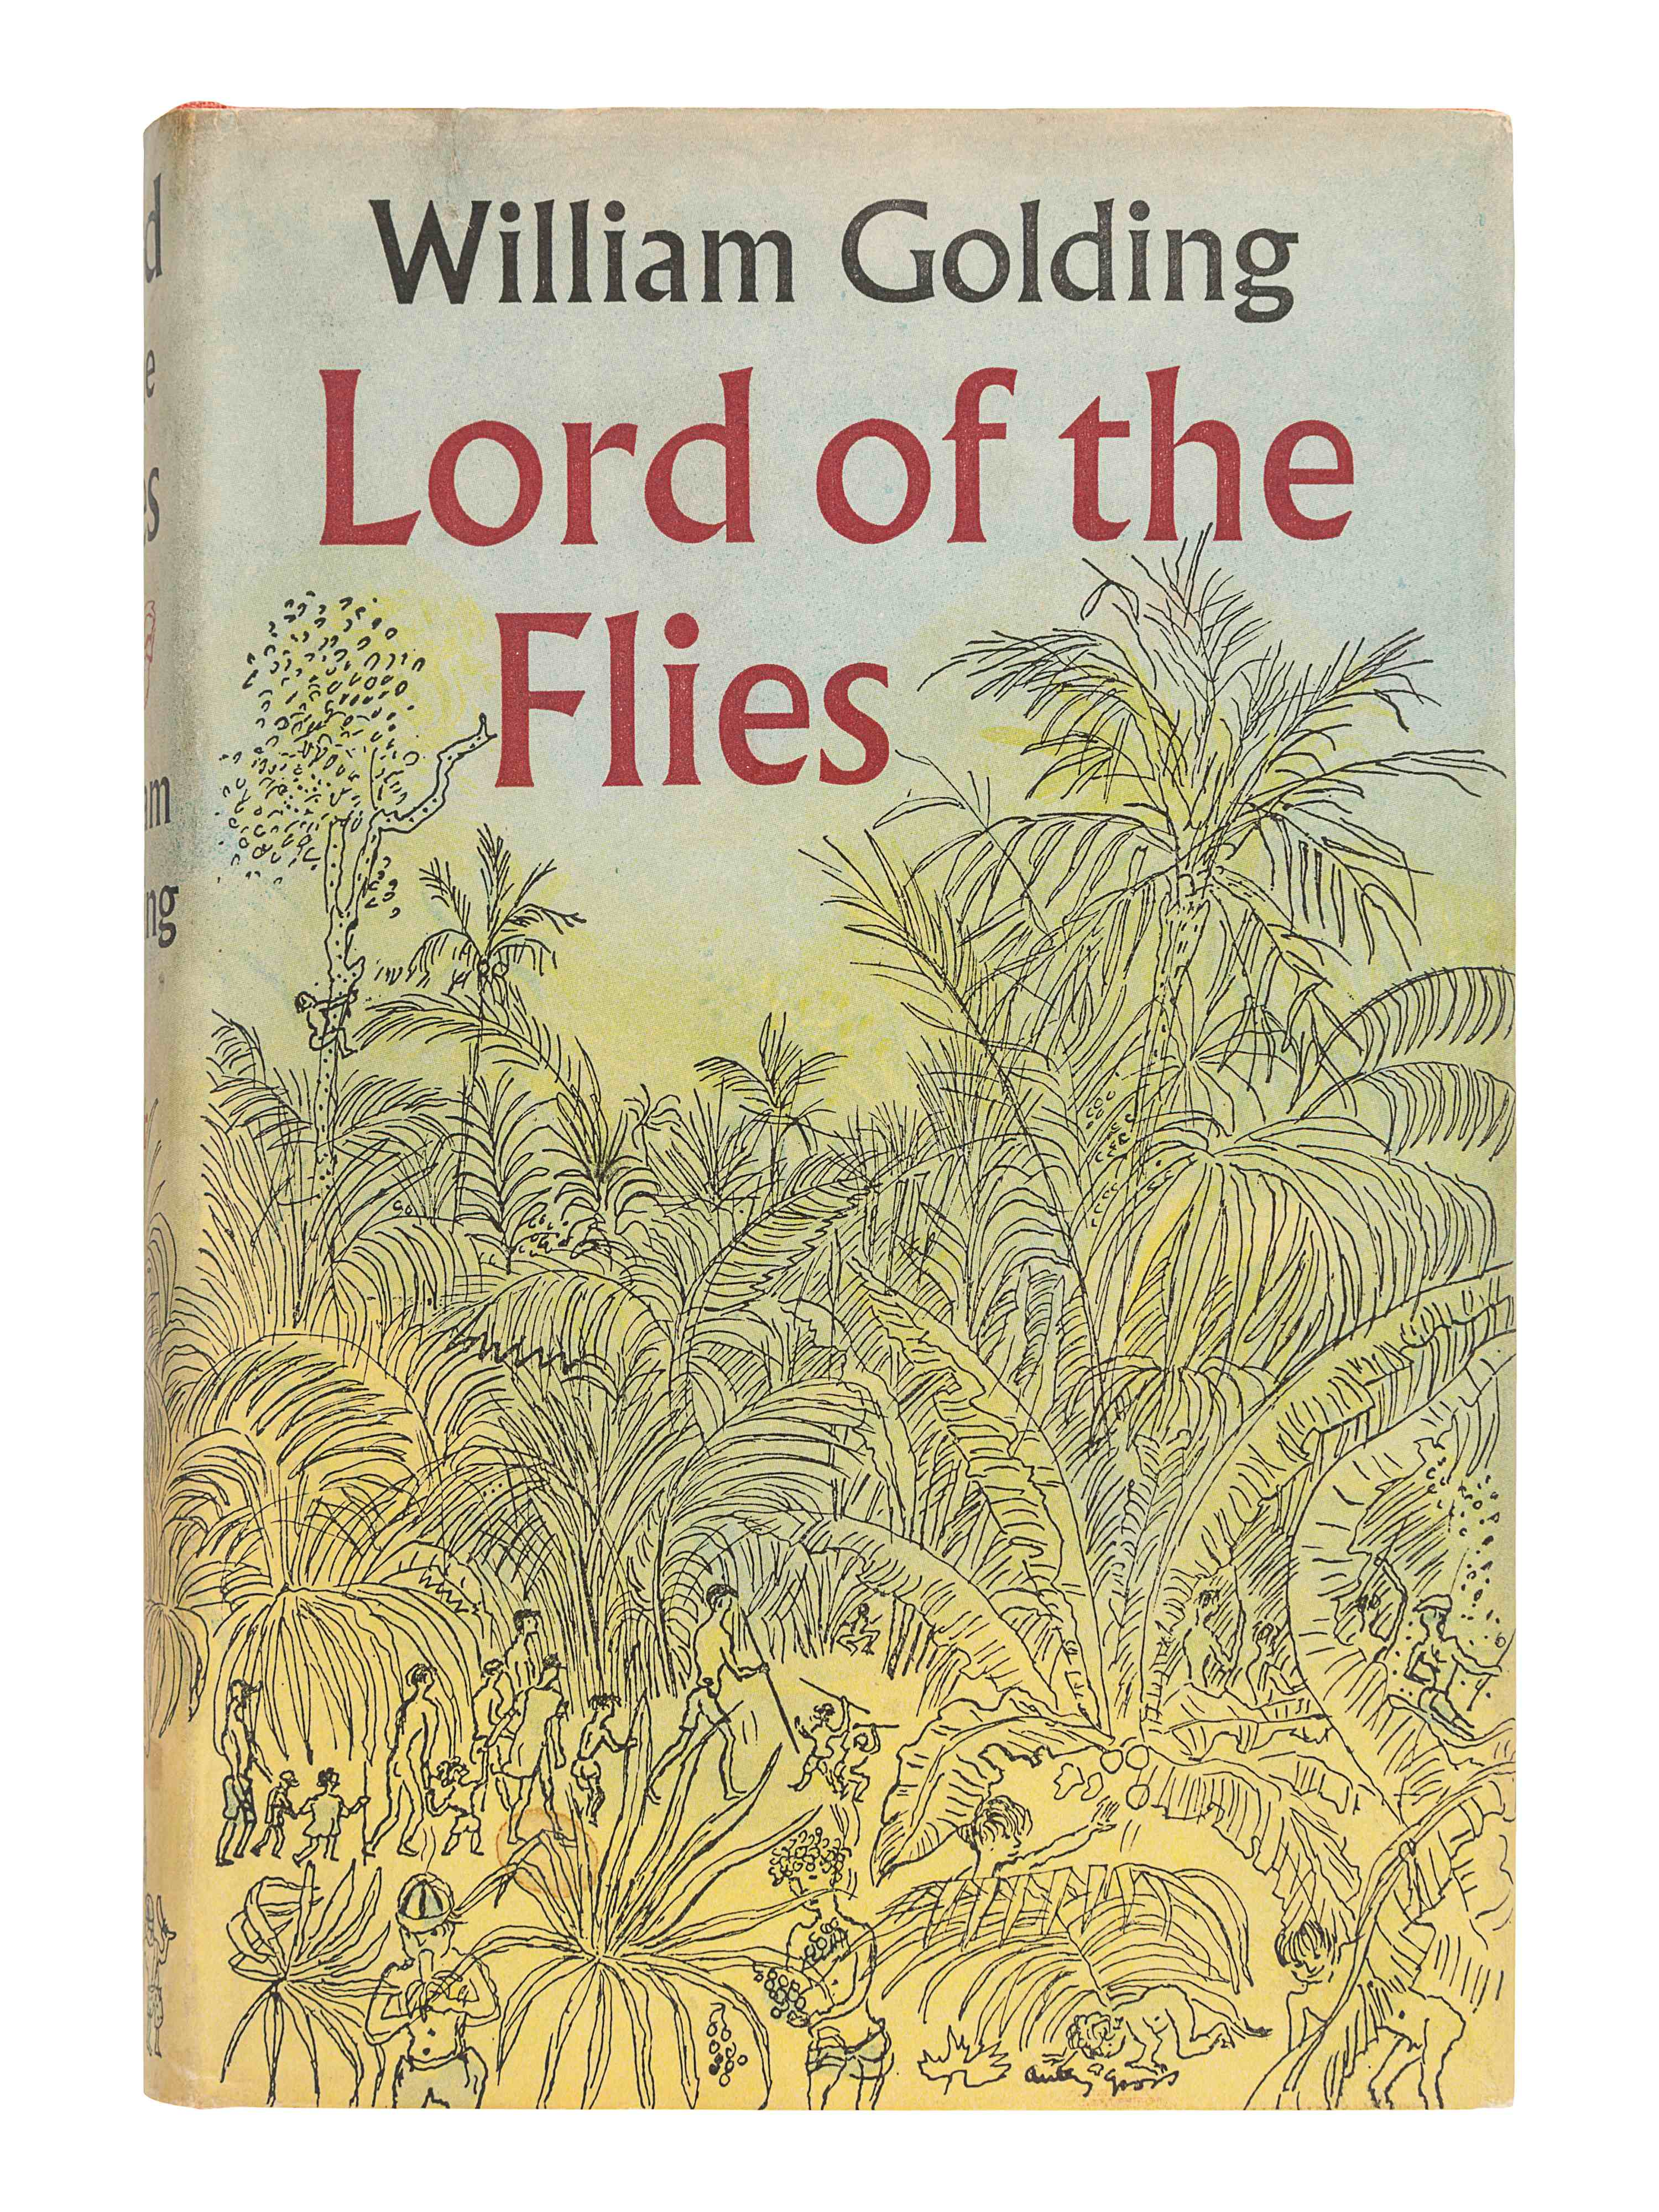 GOLDING, William (1911-1993). Lord of the Flies. London: Faber and Faber, 1954. - Image 2 of 3